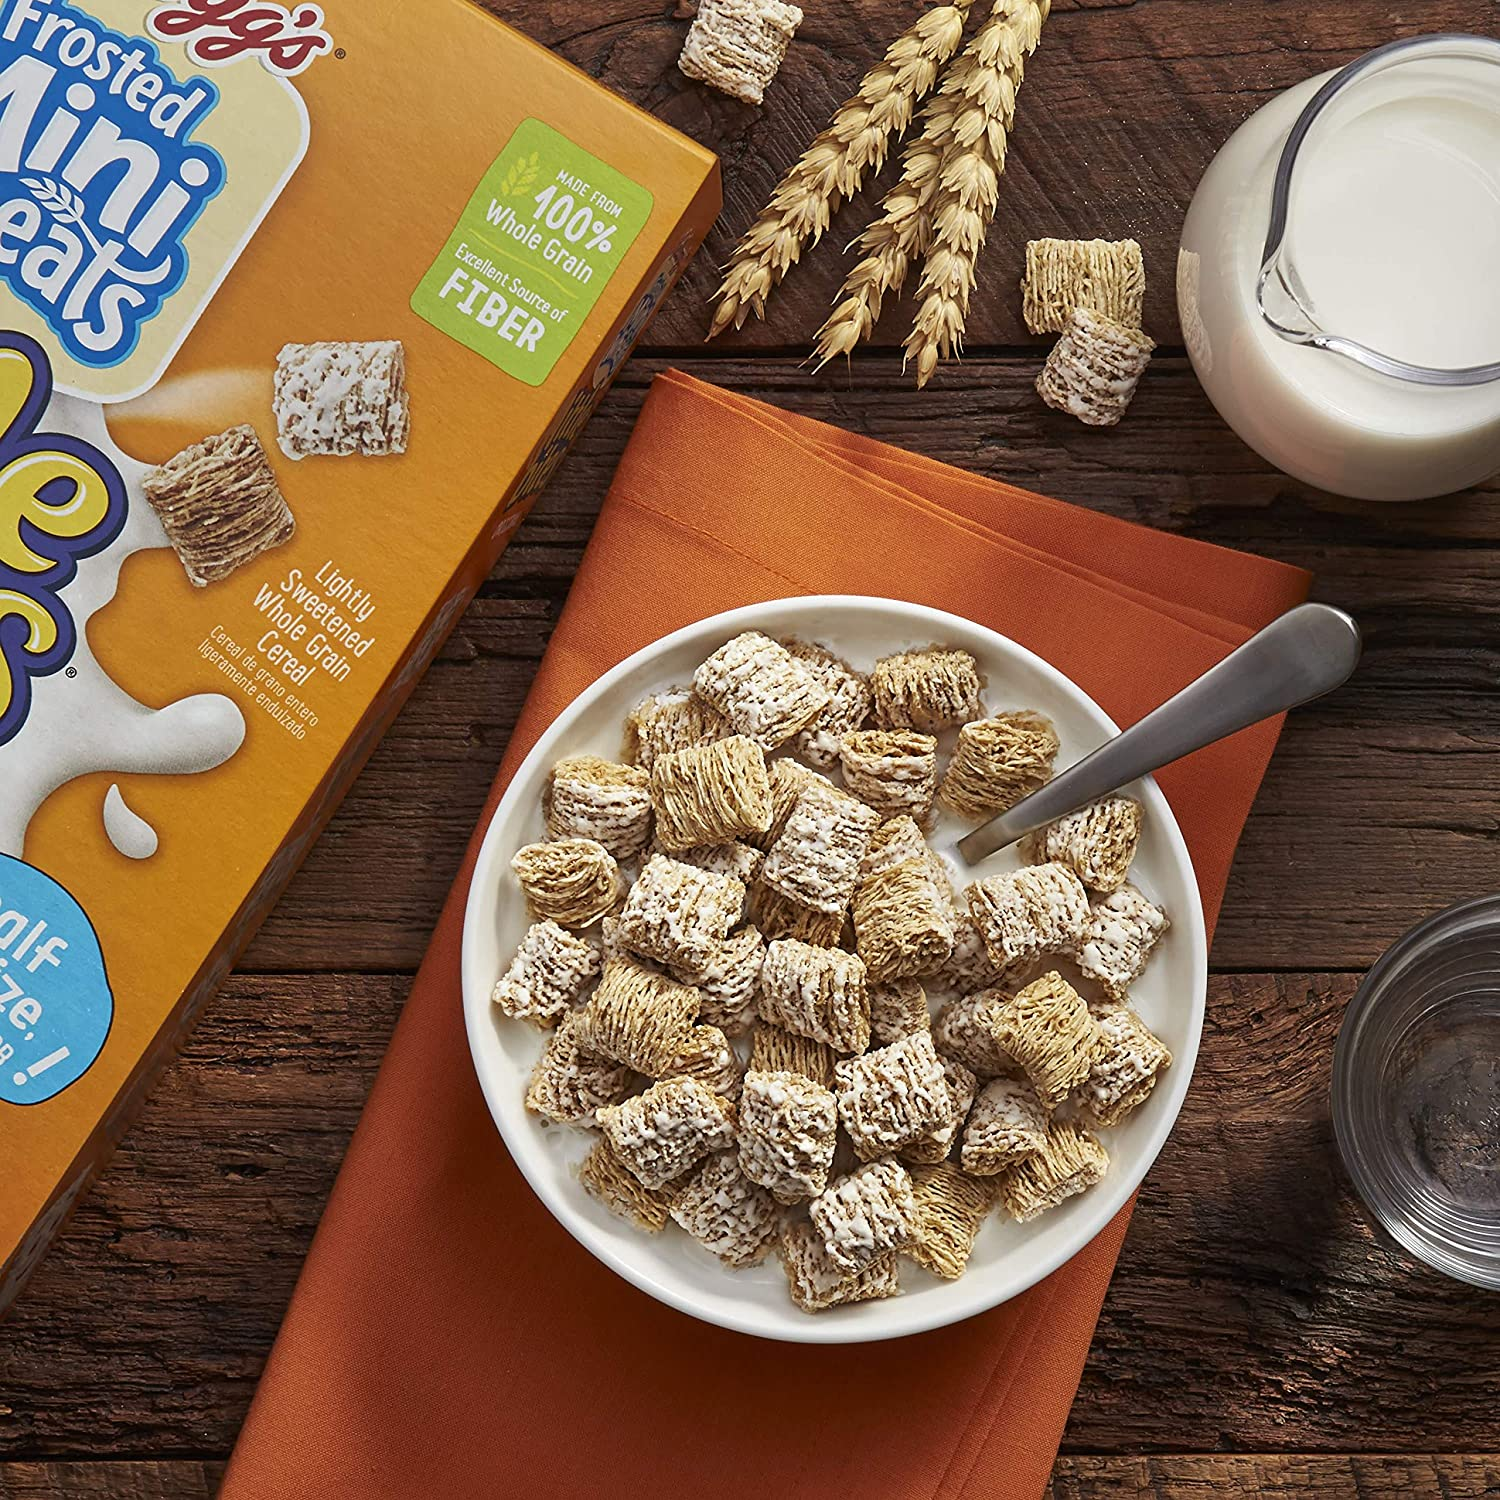 Amazon.com: Kelloggs Breakfast Cereal, Frosted Mini-Wheats, Little Bites, Original, Low Fat, Excellent Source of Fiber, 15.2 oz Box: Breakfast Cereals